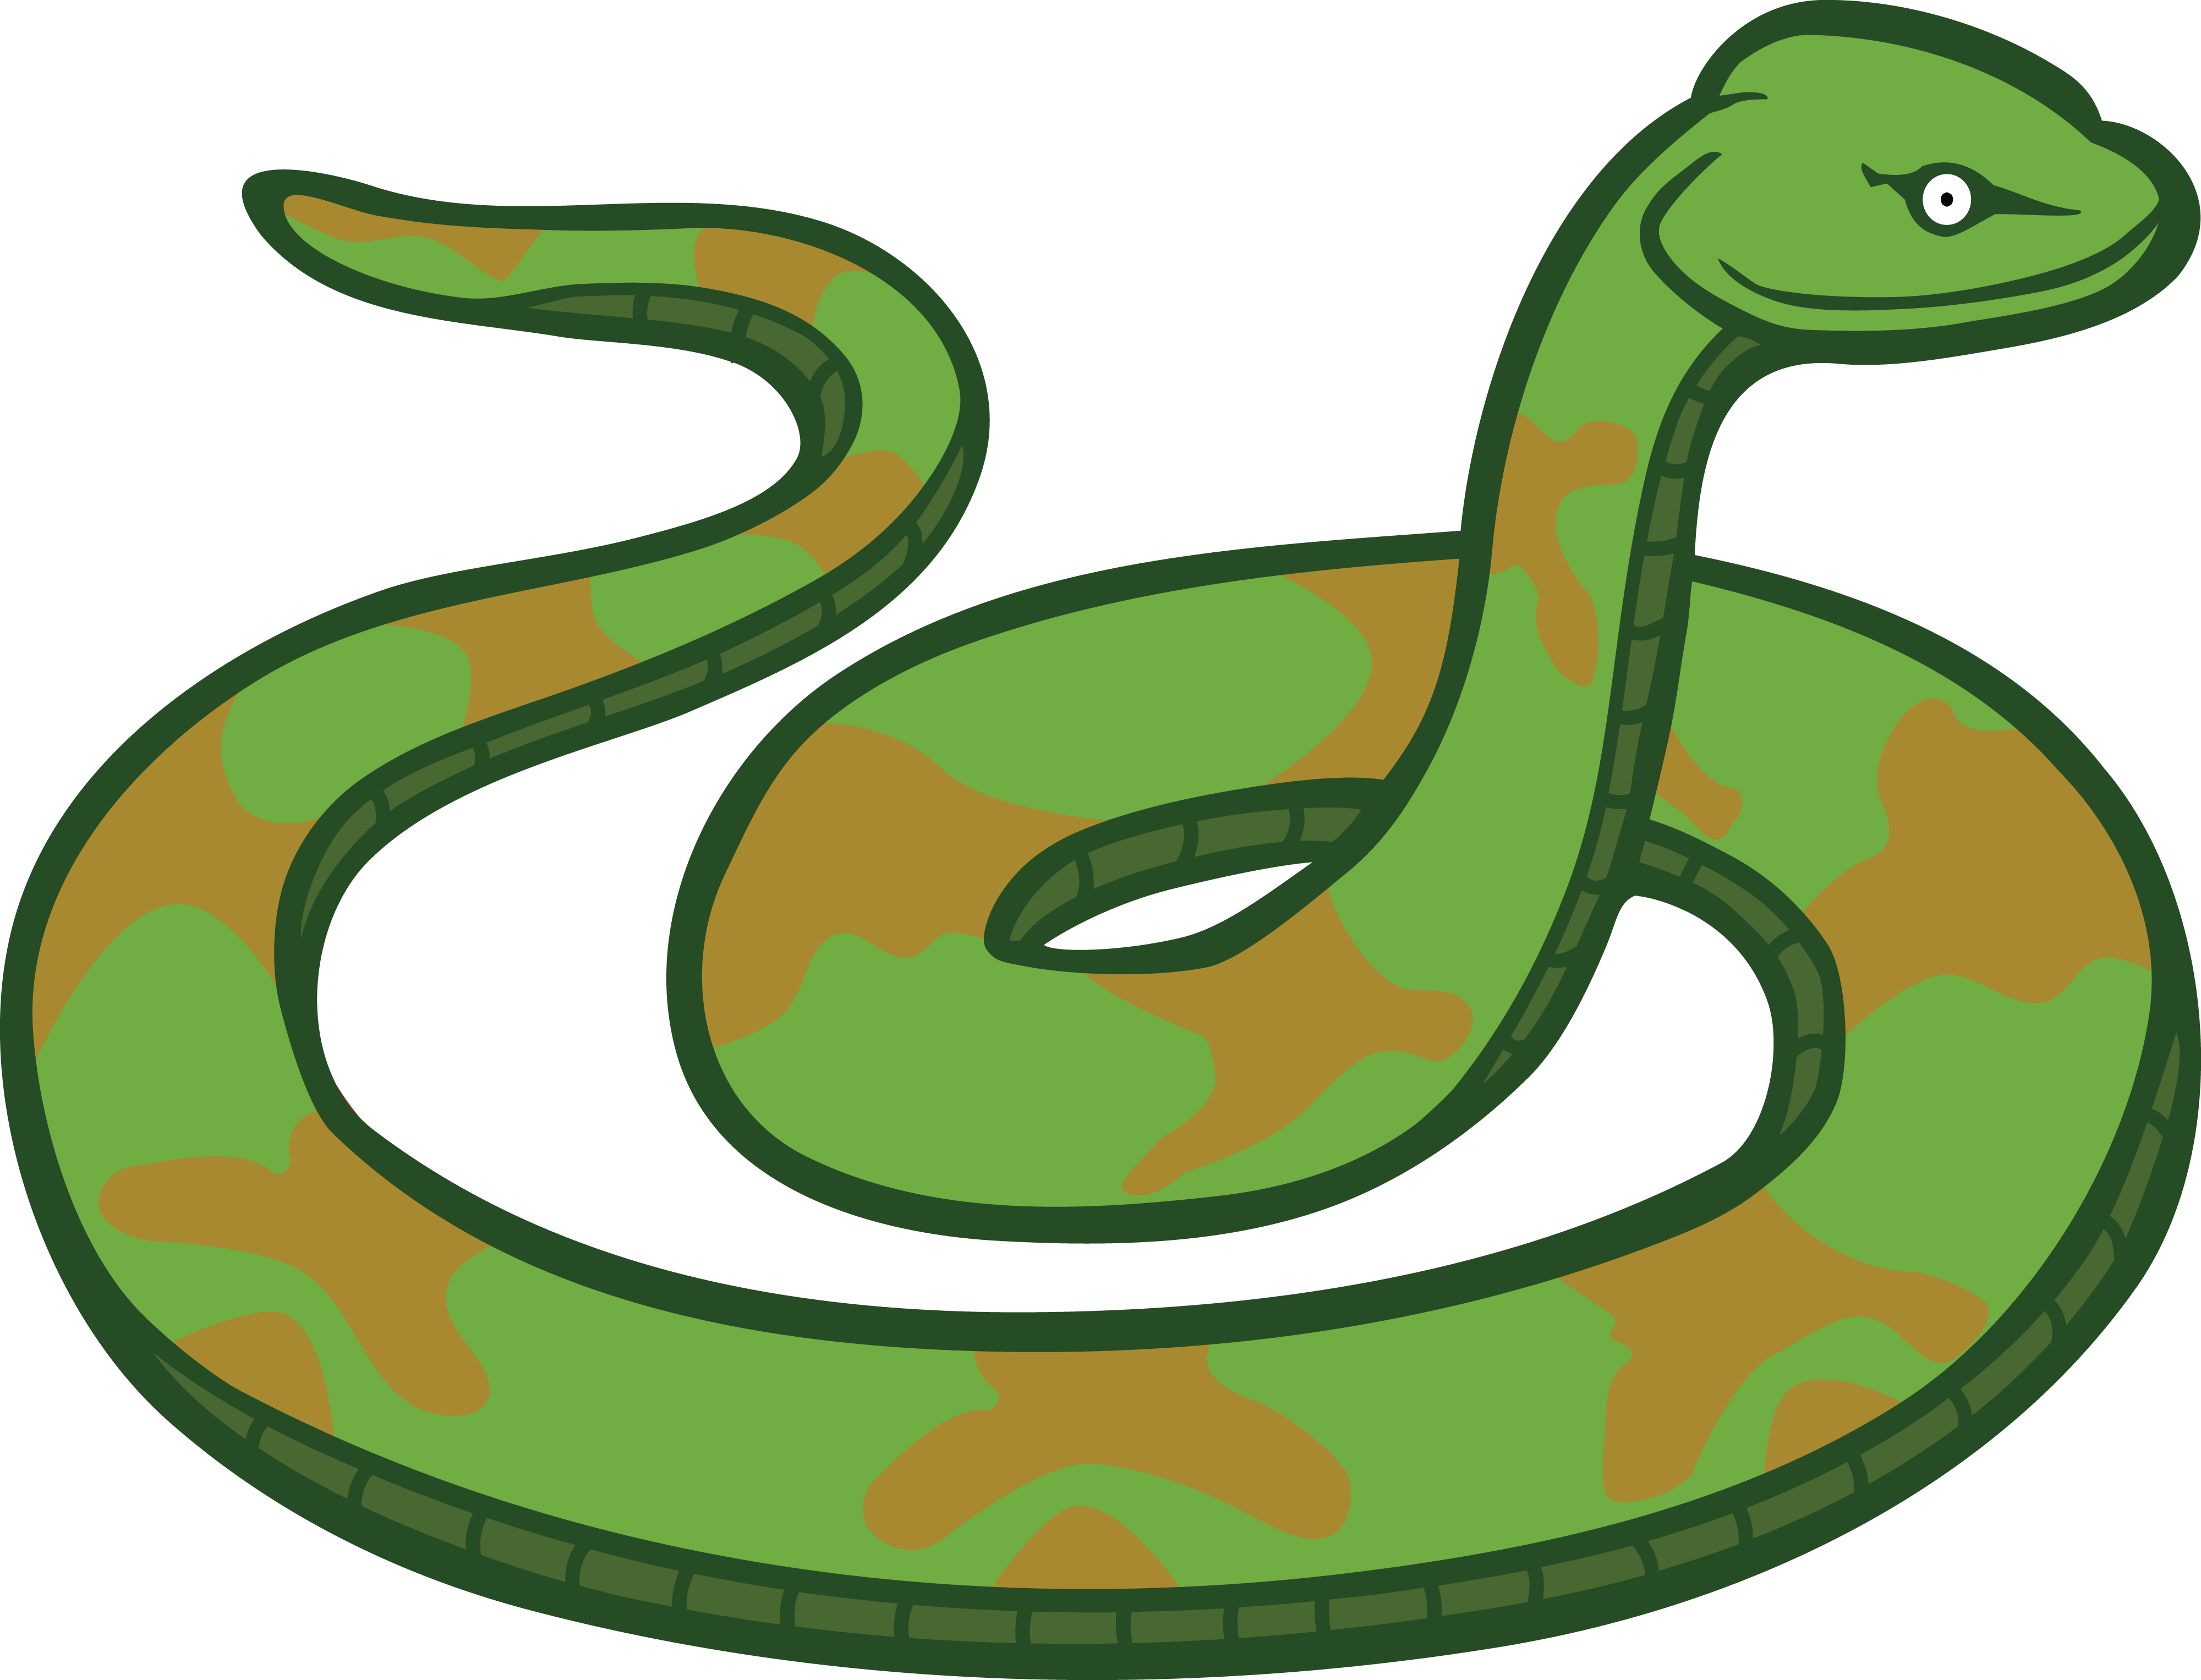 Free Clipart Snake.